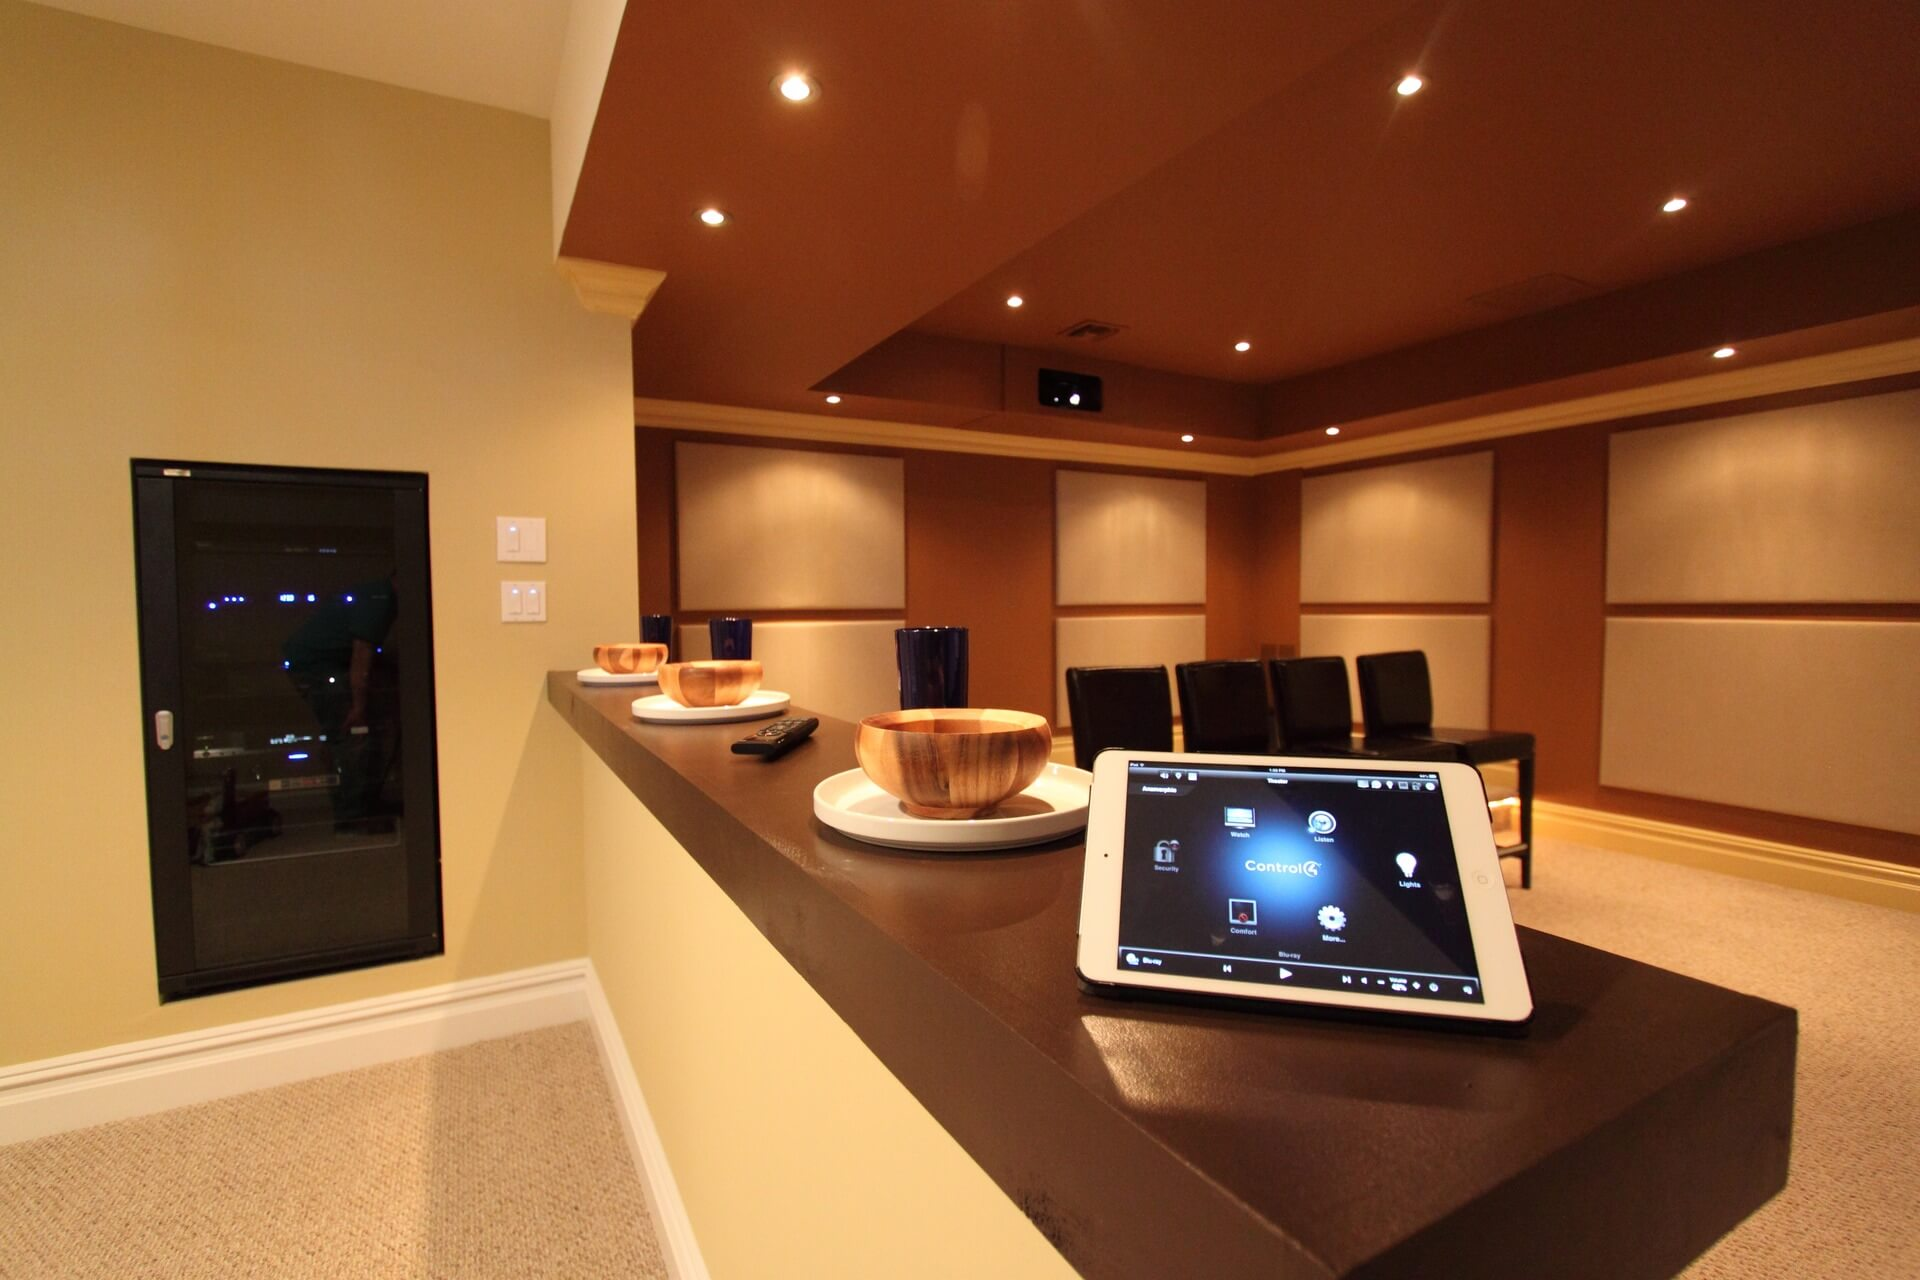 Home automation. You're in control.